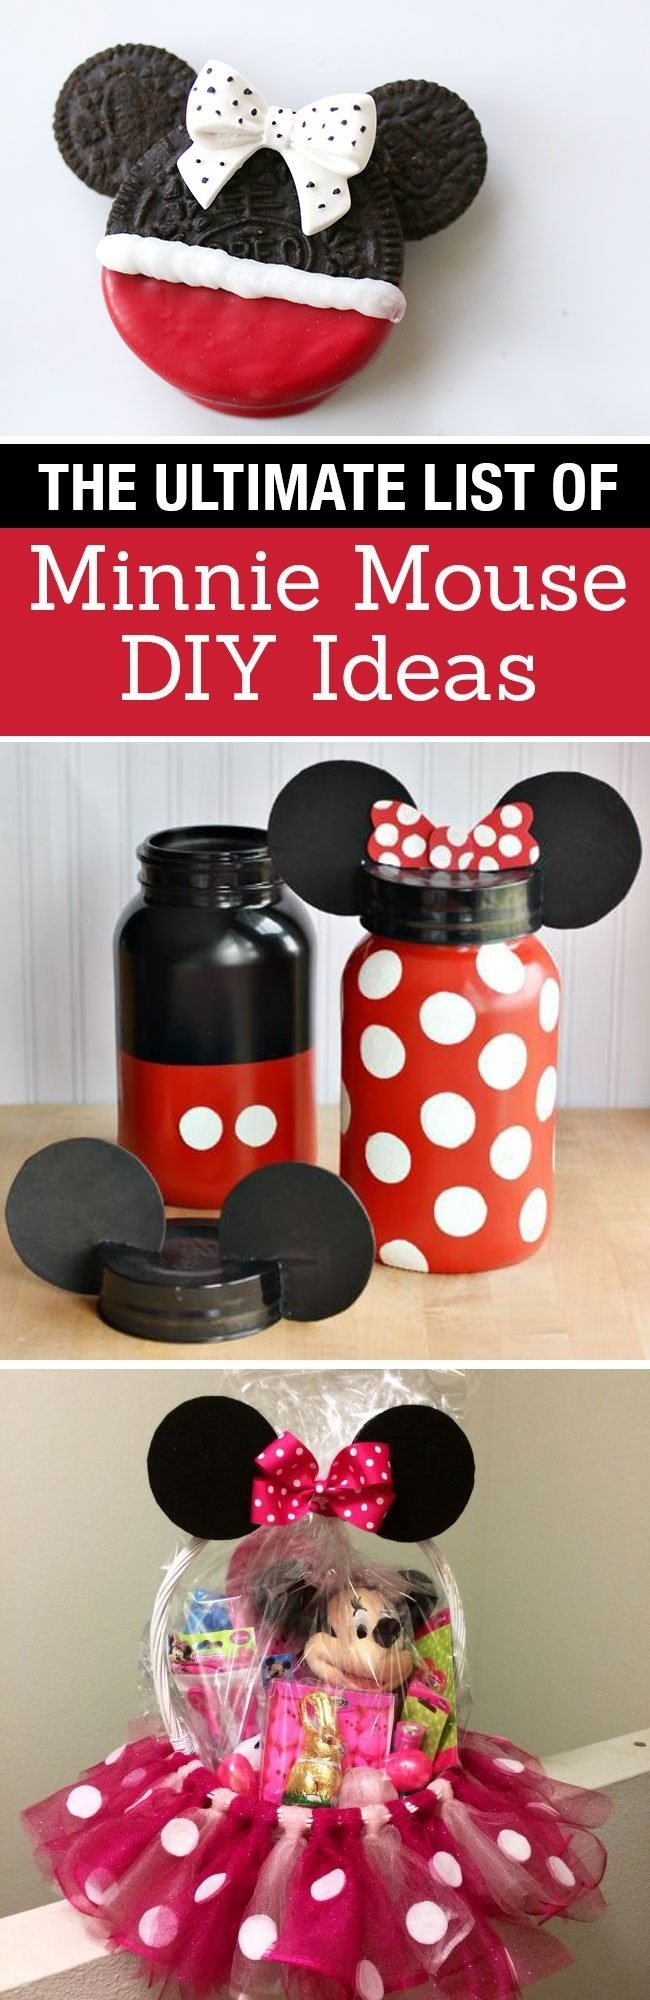 10 Stylish Red Minnie Mouse Party Ideas the ultimate list of minnie mouse craft ideas disney party ideas 2020